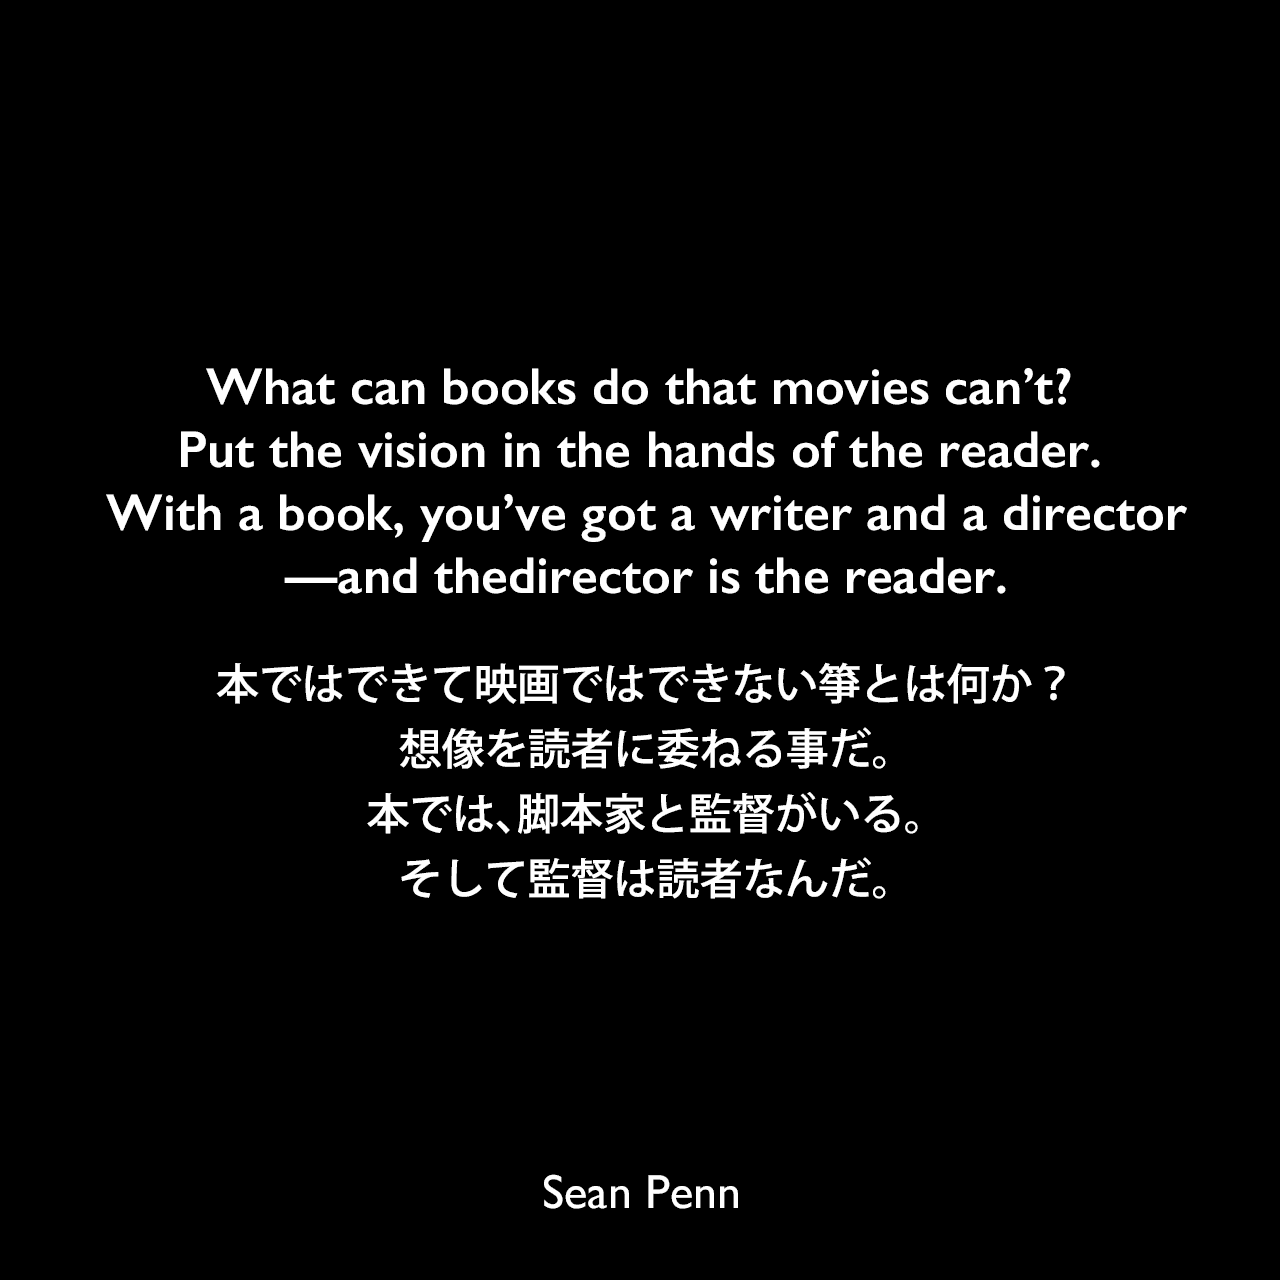 What can books do that movies can't? Put the vision in the hands of the reader. With a book, you've got a writer and a director—and thedirector is the reader.本ではできて映画ではできない箏とは何か?想像を読者に委ねる事だ。本では、脚本家と監督がいる。そして監督は読者なんだ。Sean Penn